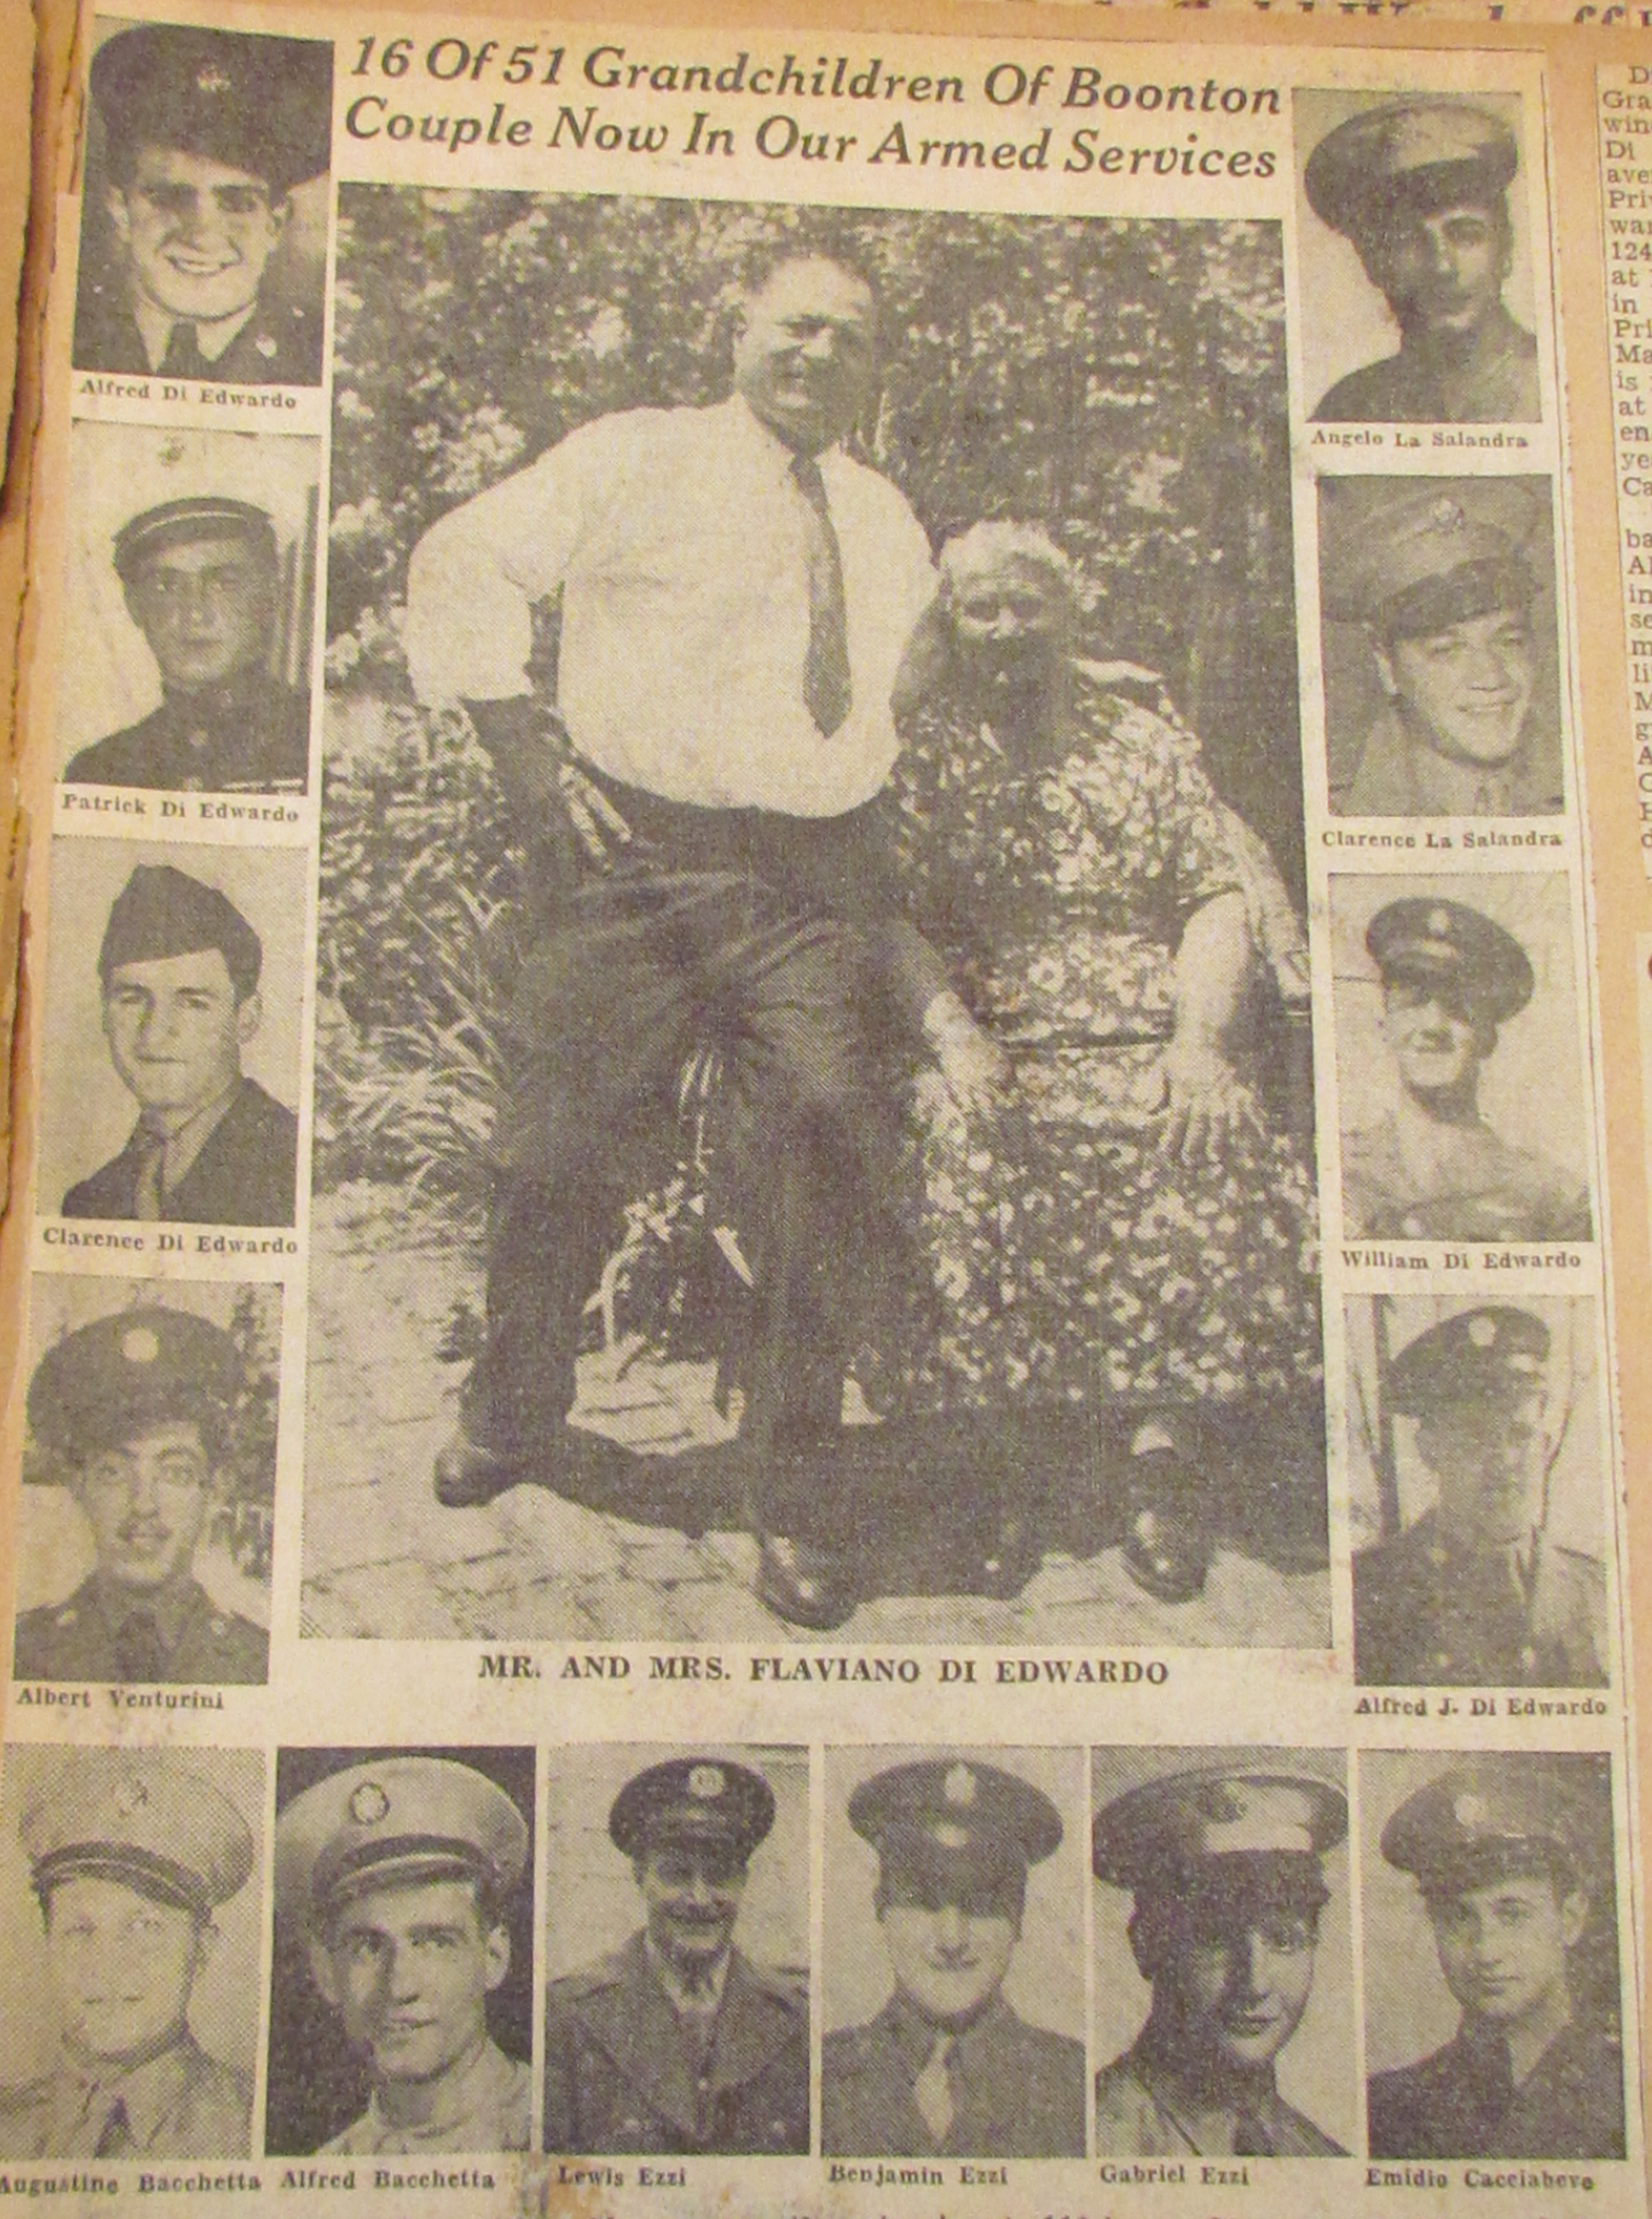 16 of 51 Grandchildren of Boonton Couple Now In Our Armed Services, detailed newspaper clip